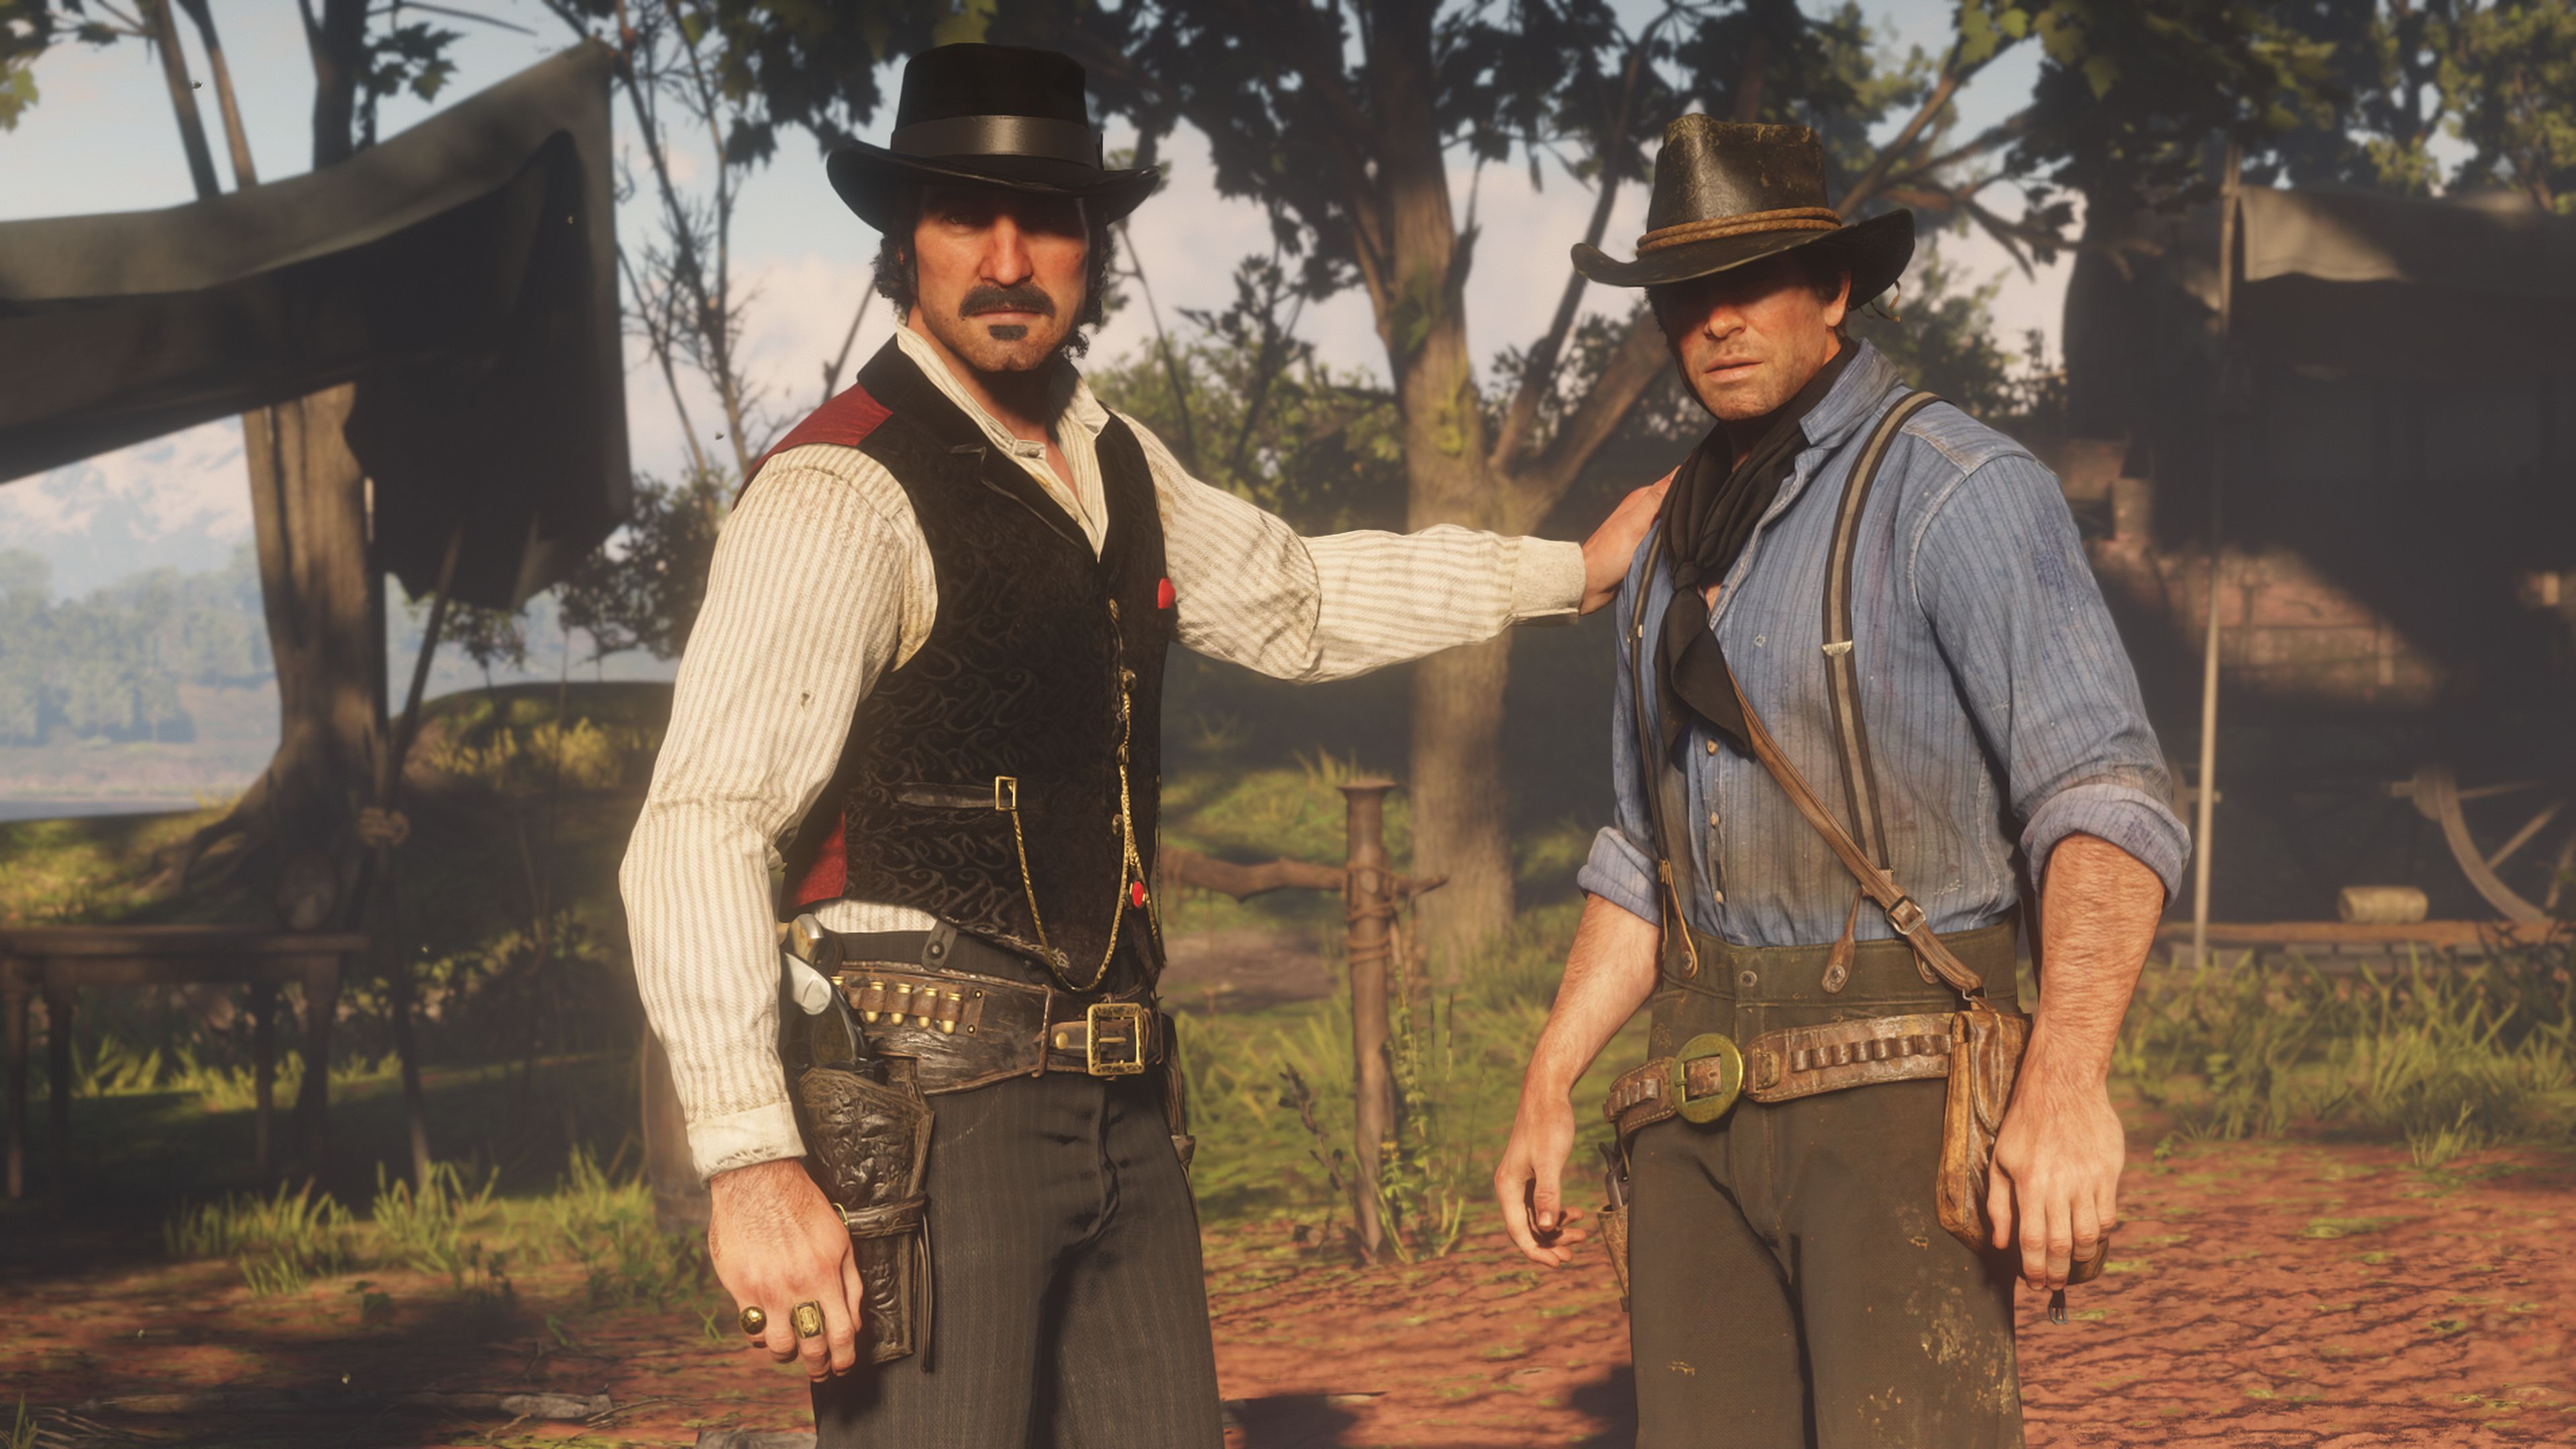 Red Dead Redemption 2's epilogue fixes one of the game's biggest problems